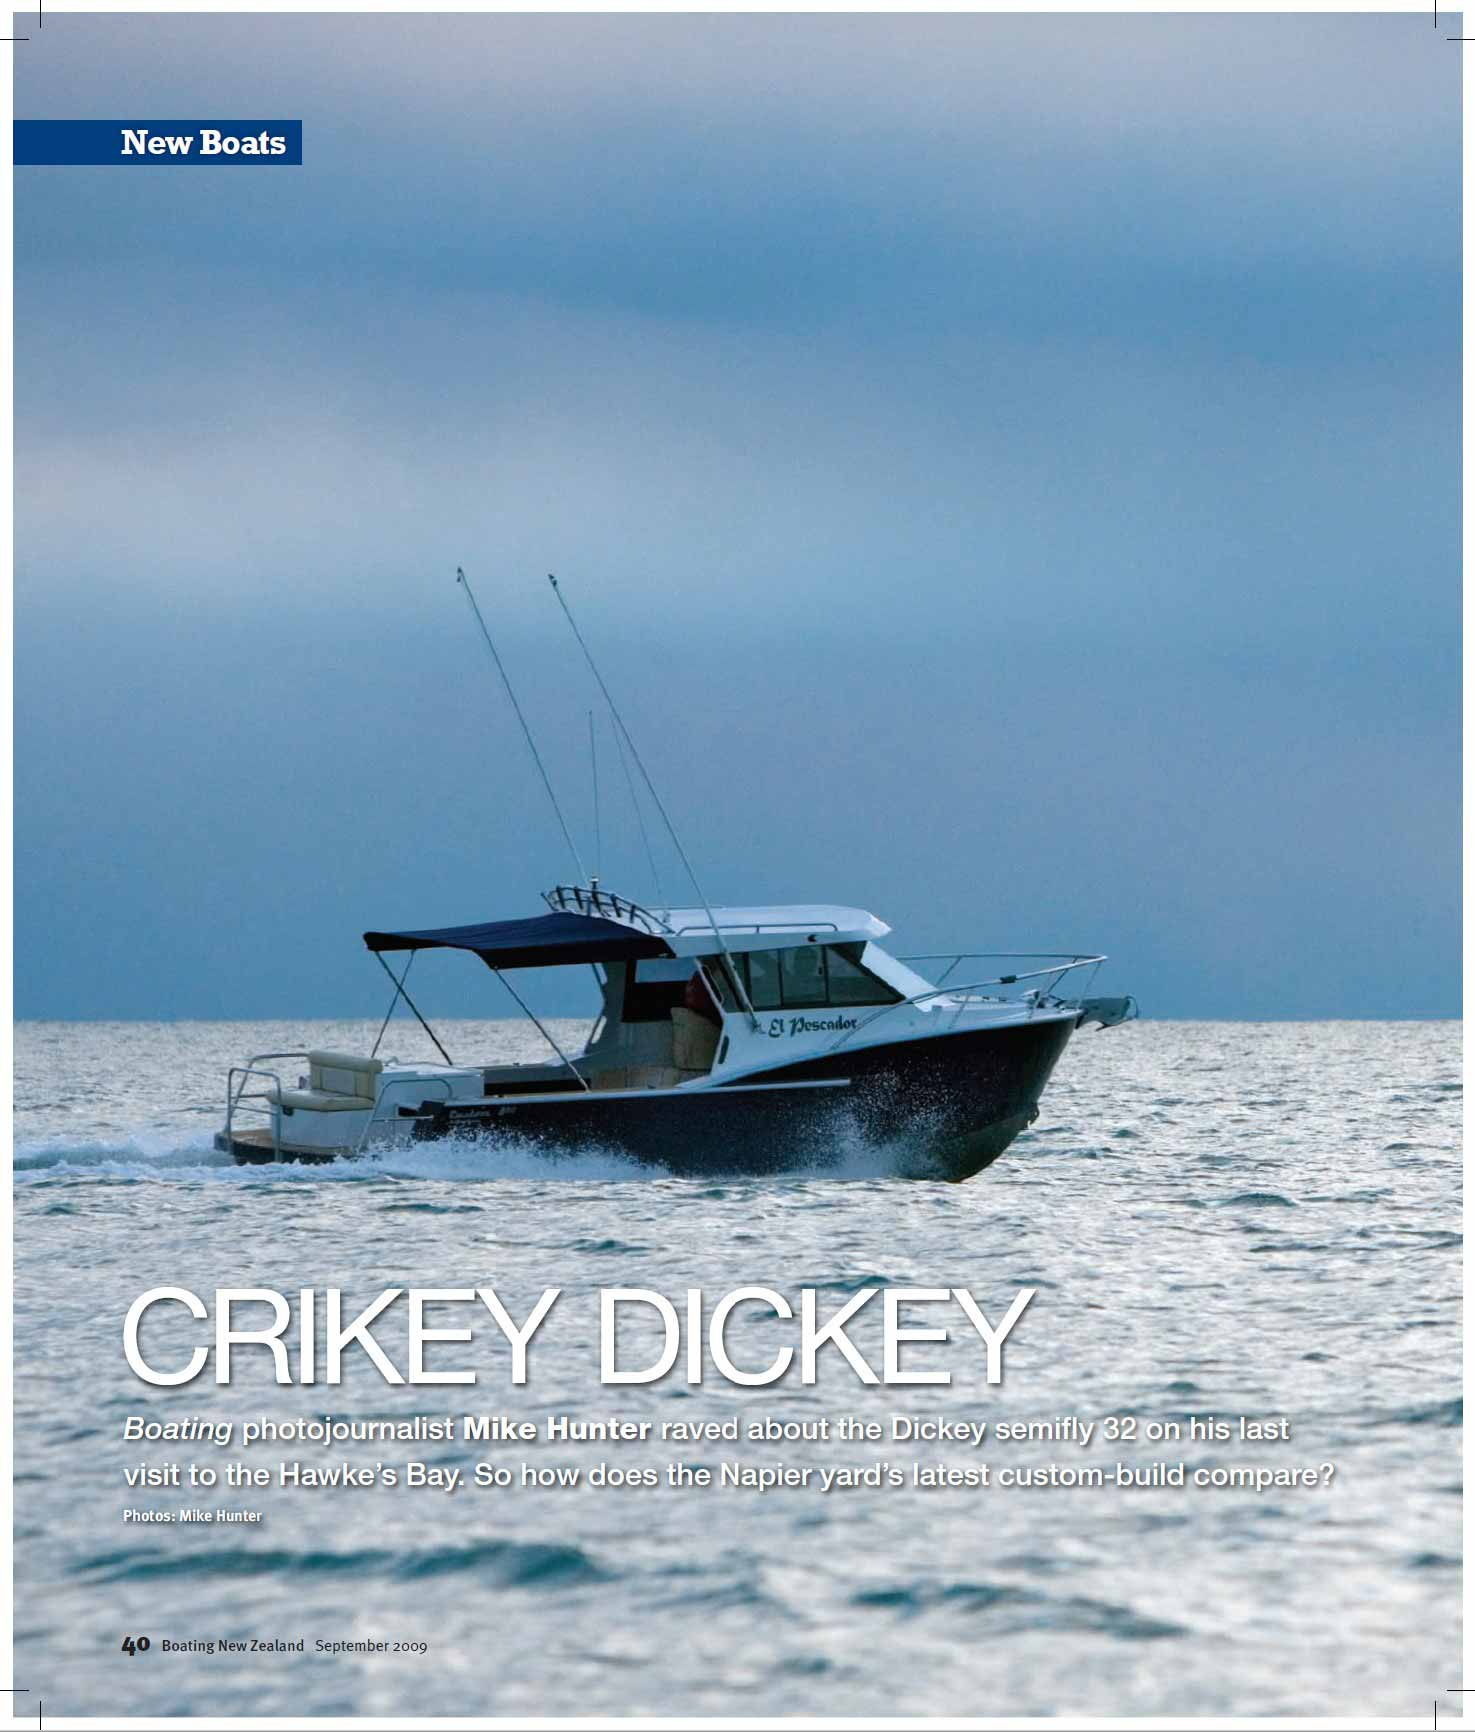 Dickey Custom 800 review - Boating NZ (2009)